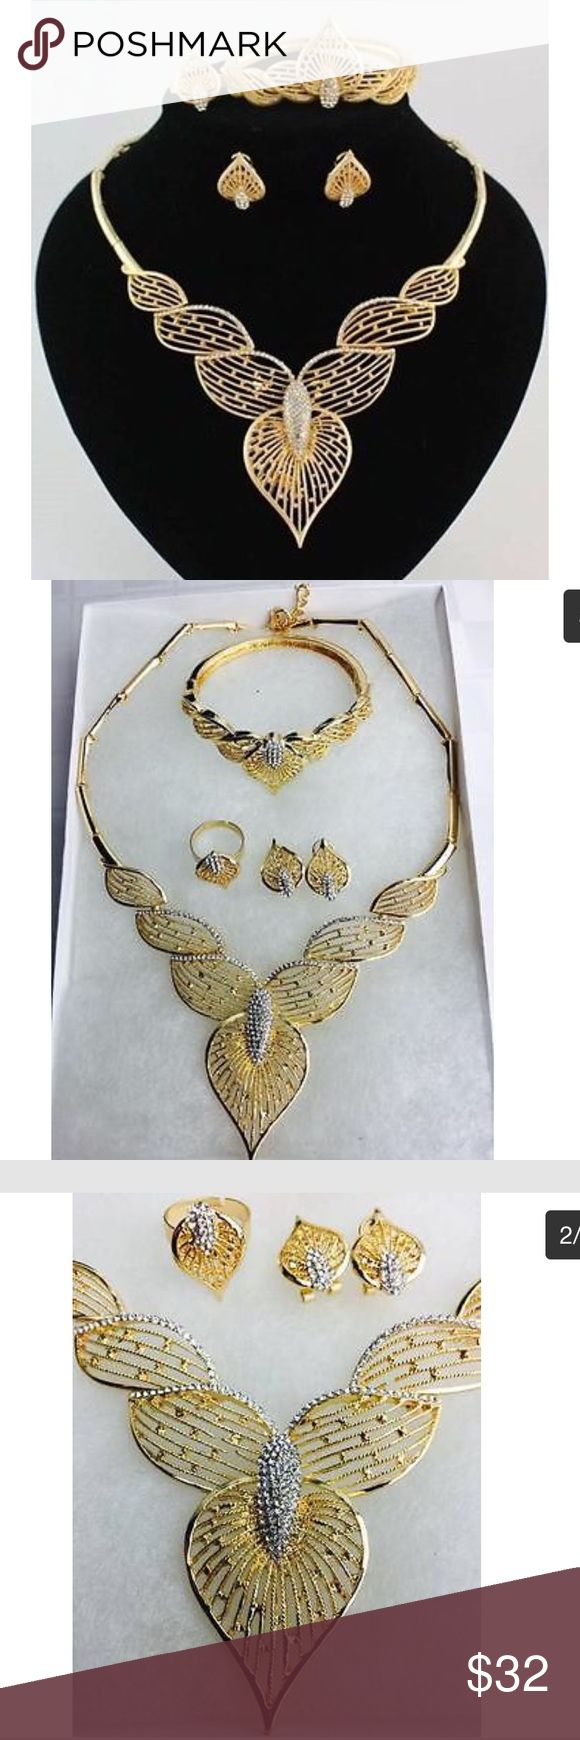 best set images on pinterest gold necklaces indian jewelry and